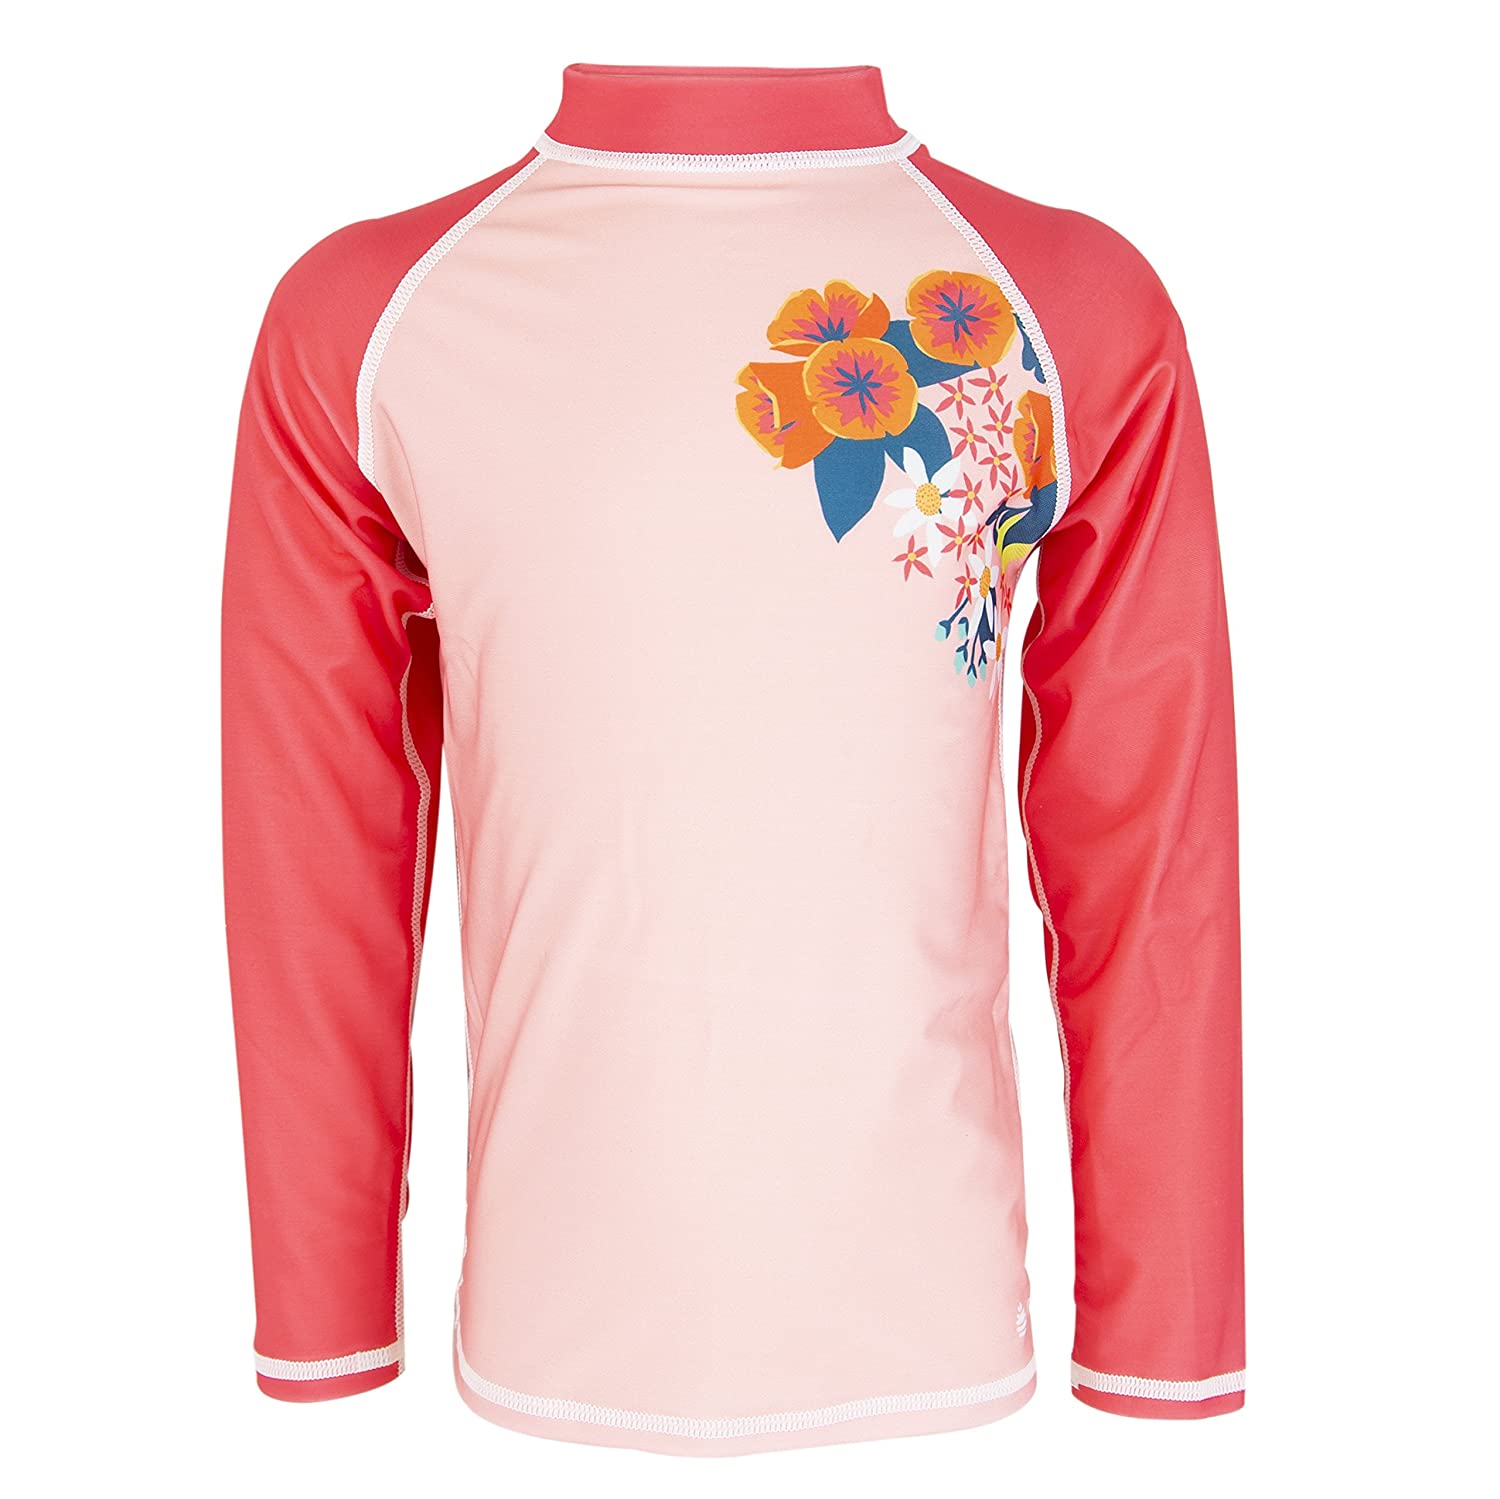 Oakiwear Kids' Rash Guard Short Sleeve UPF 50+ Sun Shirt